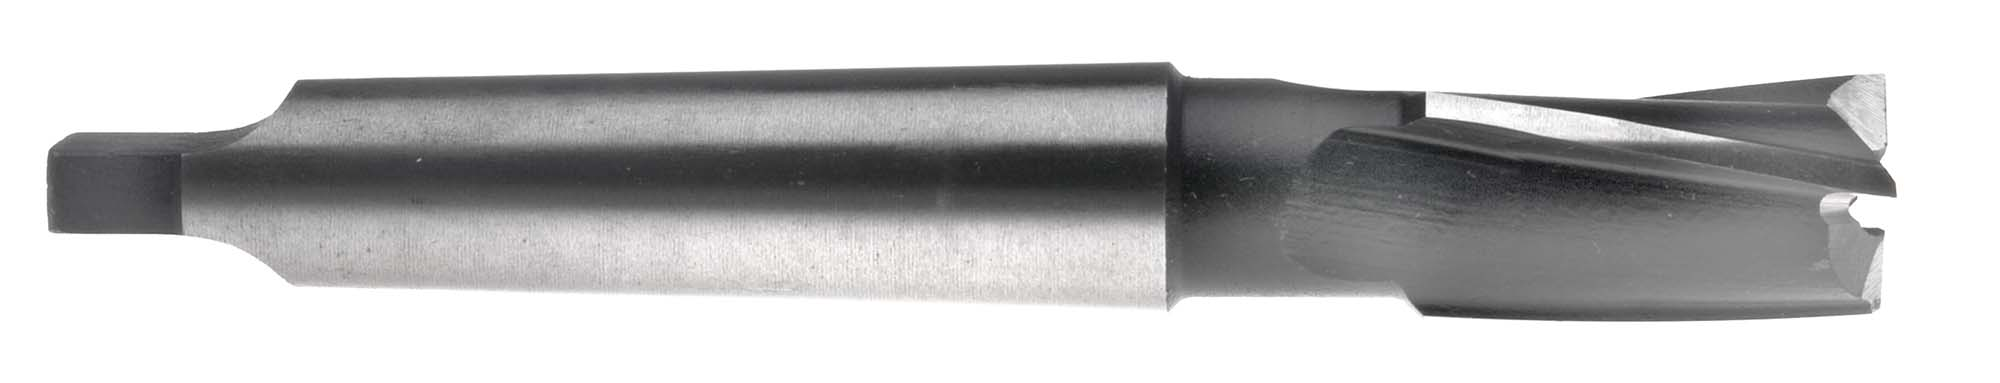 "1-3/4"" Taper Shank Counterbore, Interchangeable Pilot Type, High Speed Steel"